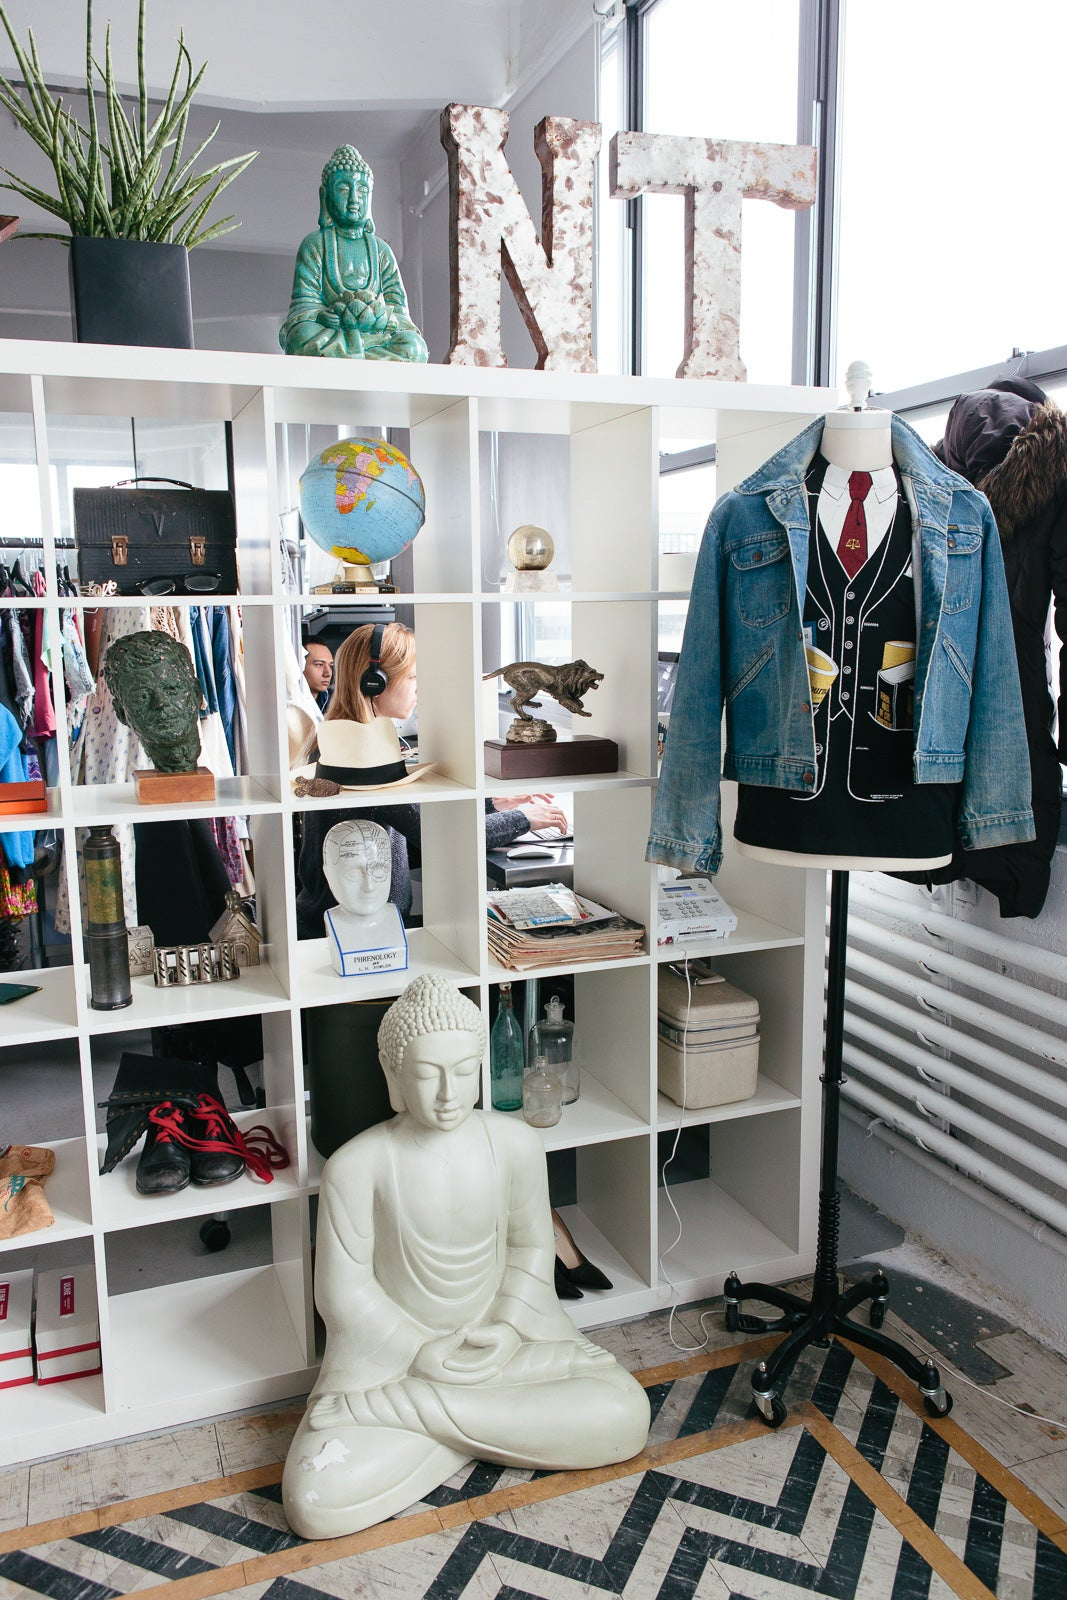 nifty thrifty office tour online thrift shopping where do you see niftythrifty in the next year three years five years what are your goals tl we feel as if we re at the cutting edge of a very rapidly